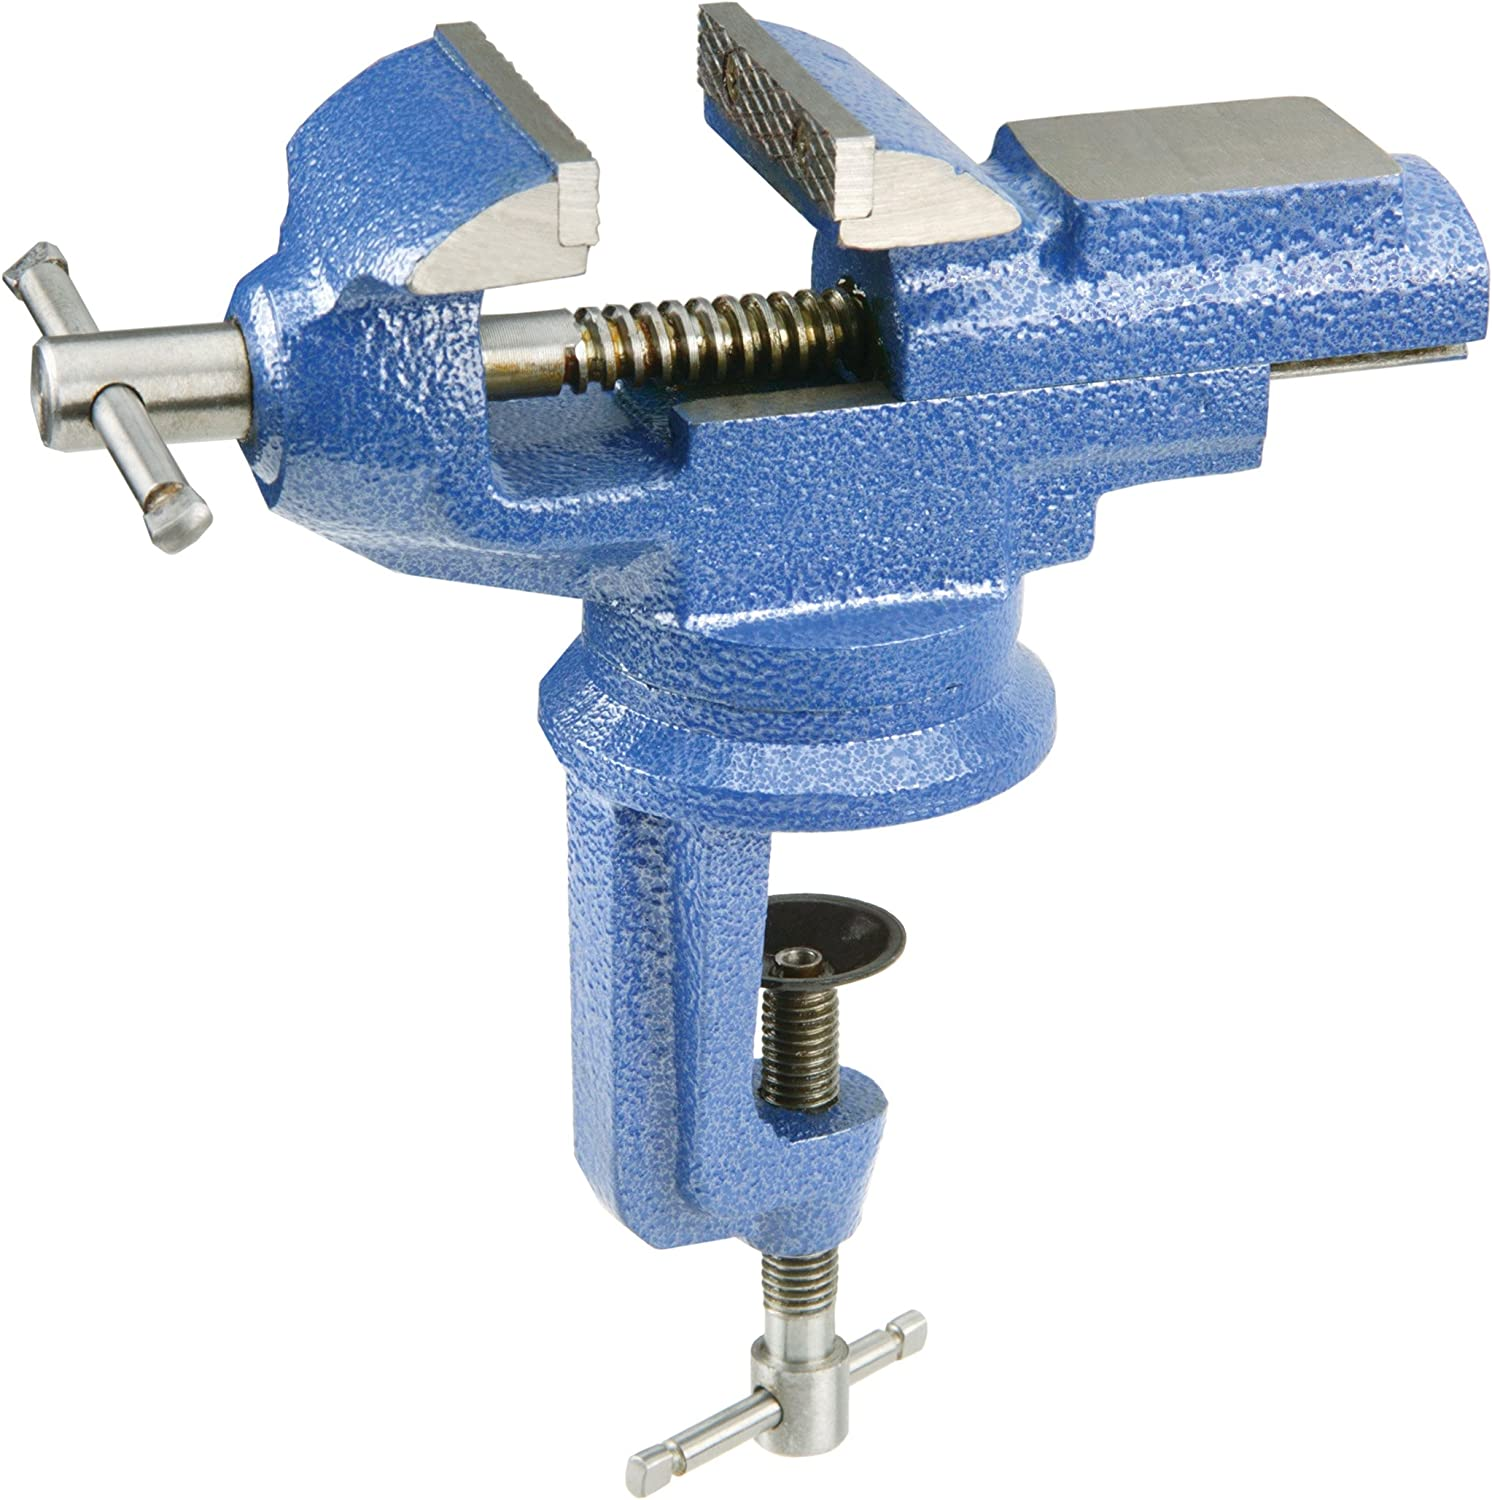 Woodstock D4128 2-1/2-Inch Clamp On Square Anvil Vise